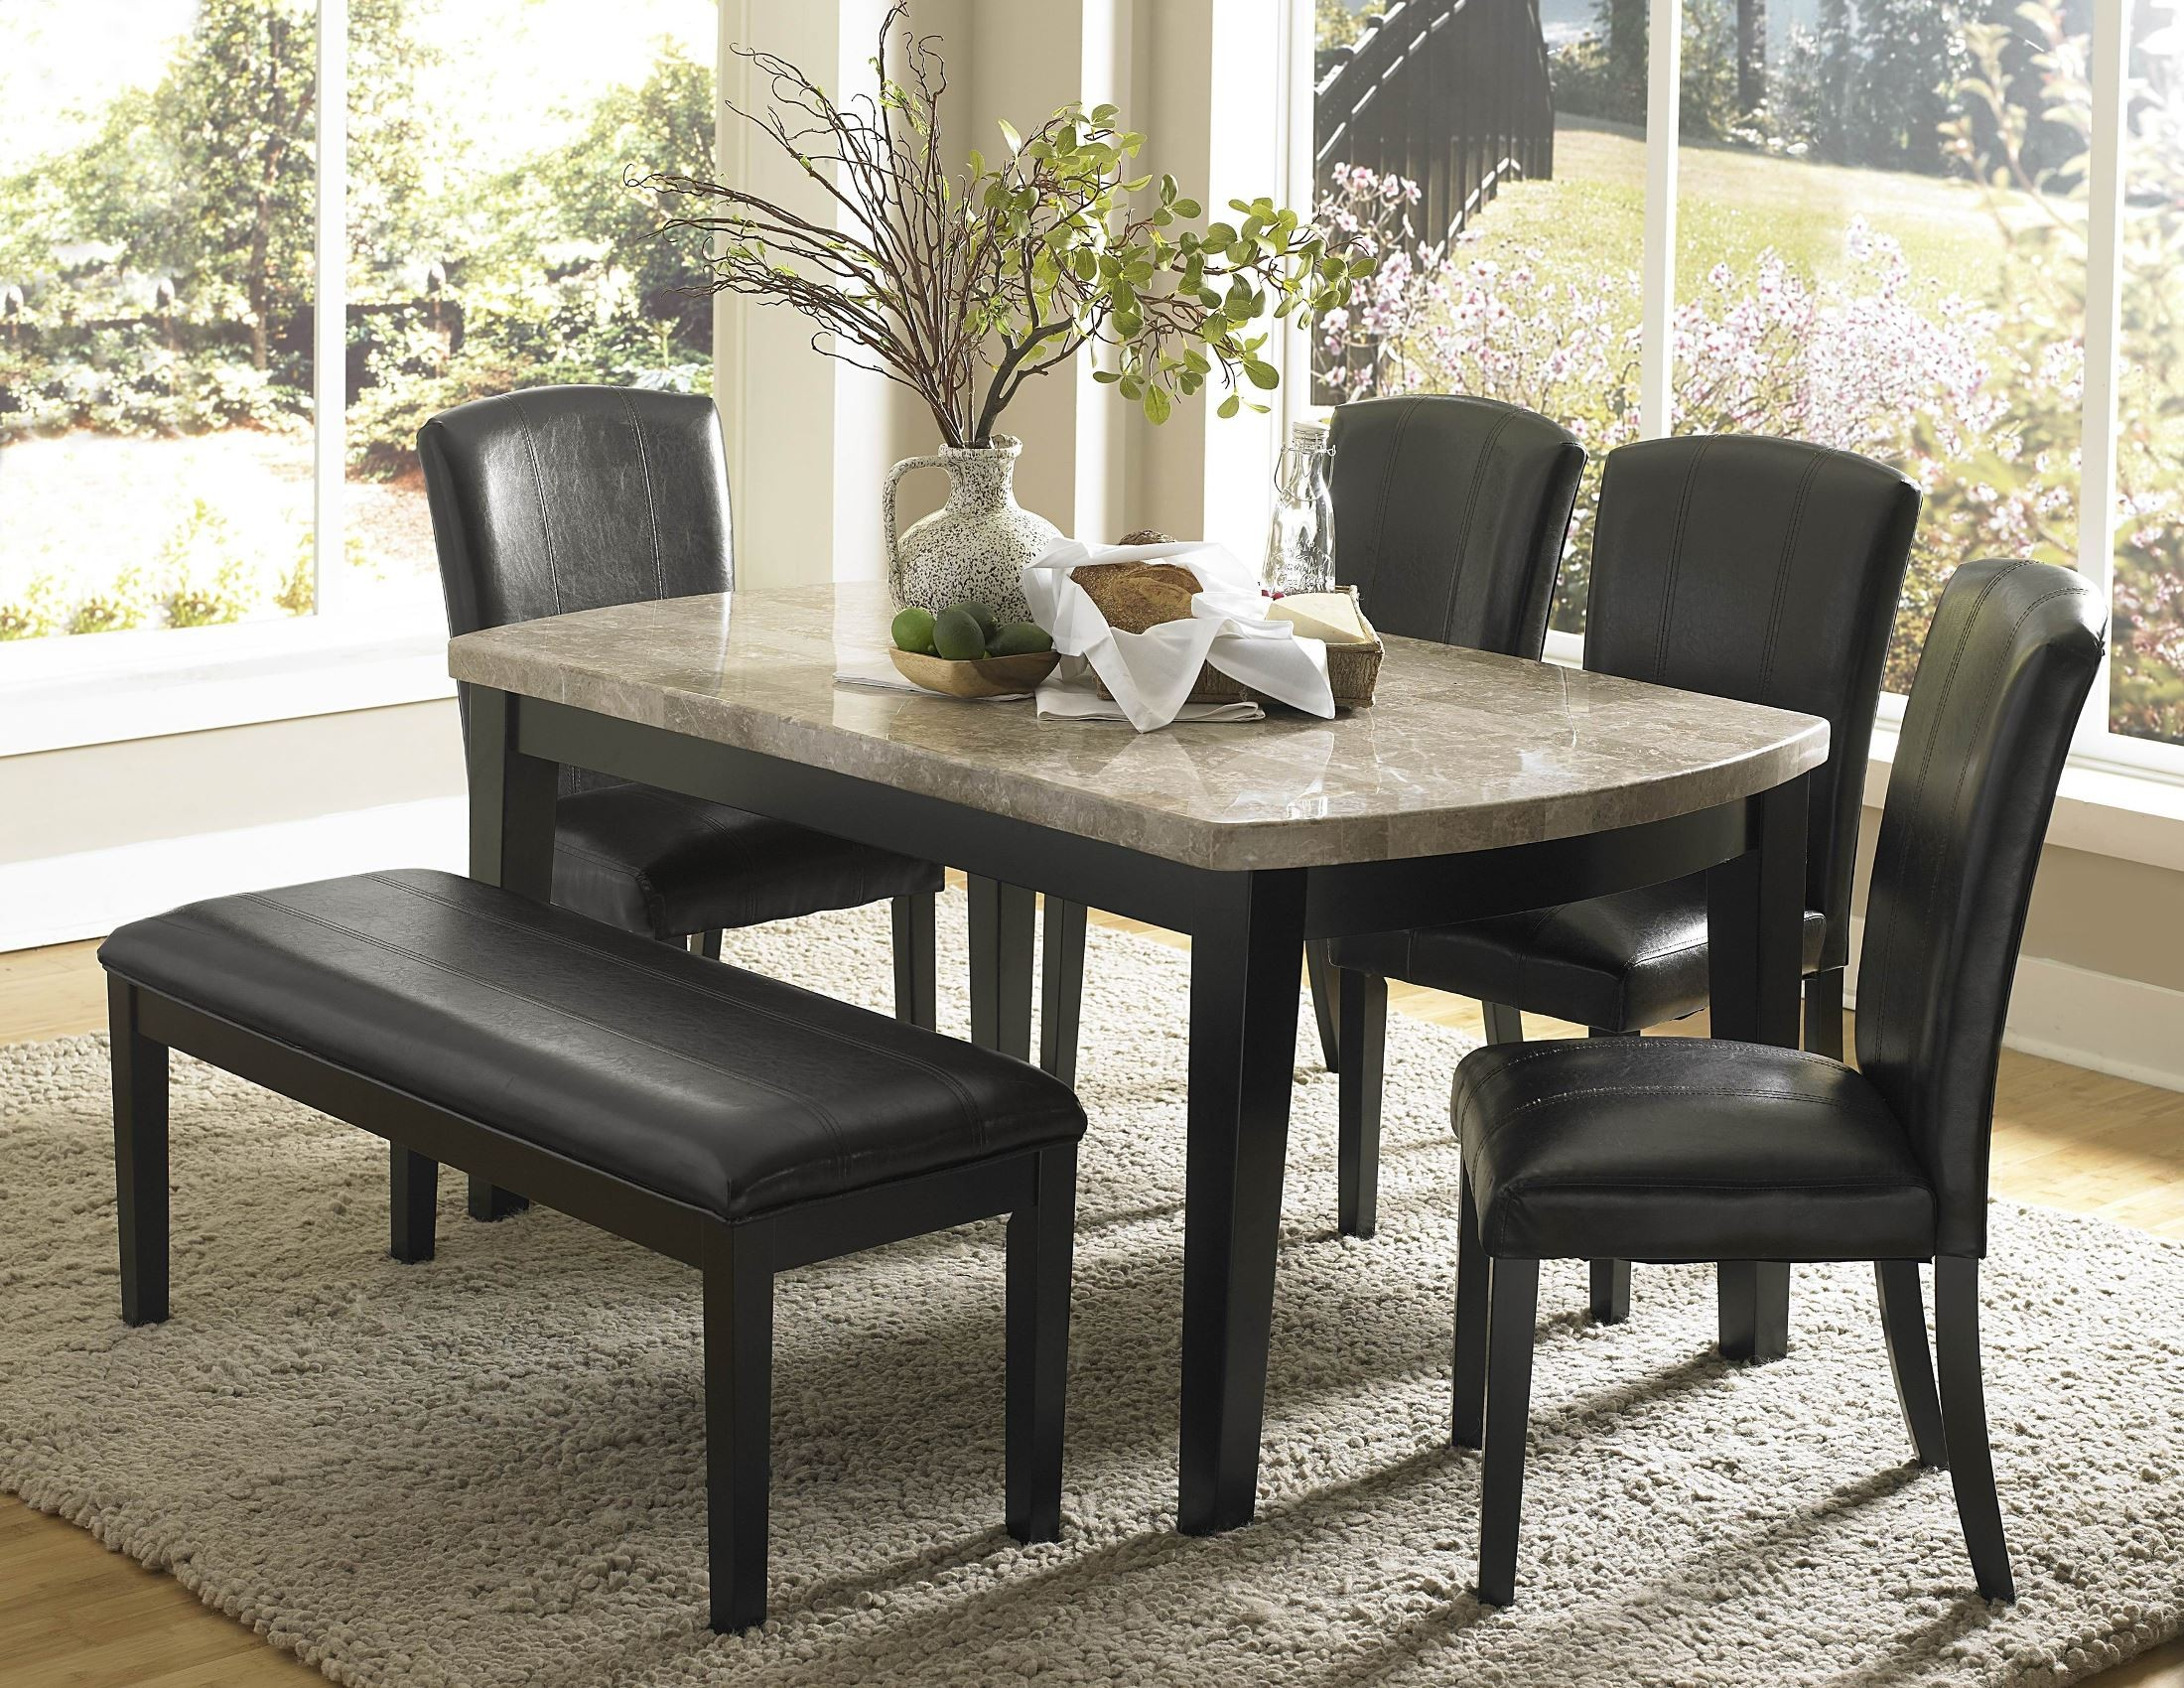 cristo marble top dining room set from homelegance 5070 64 coleman